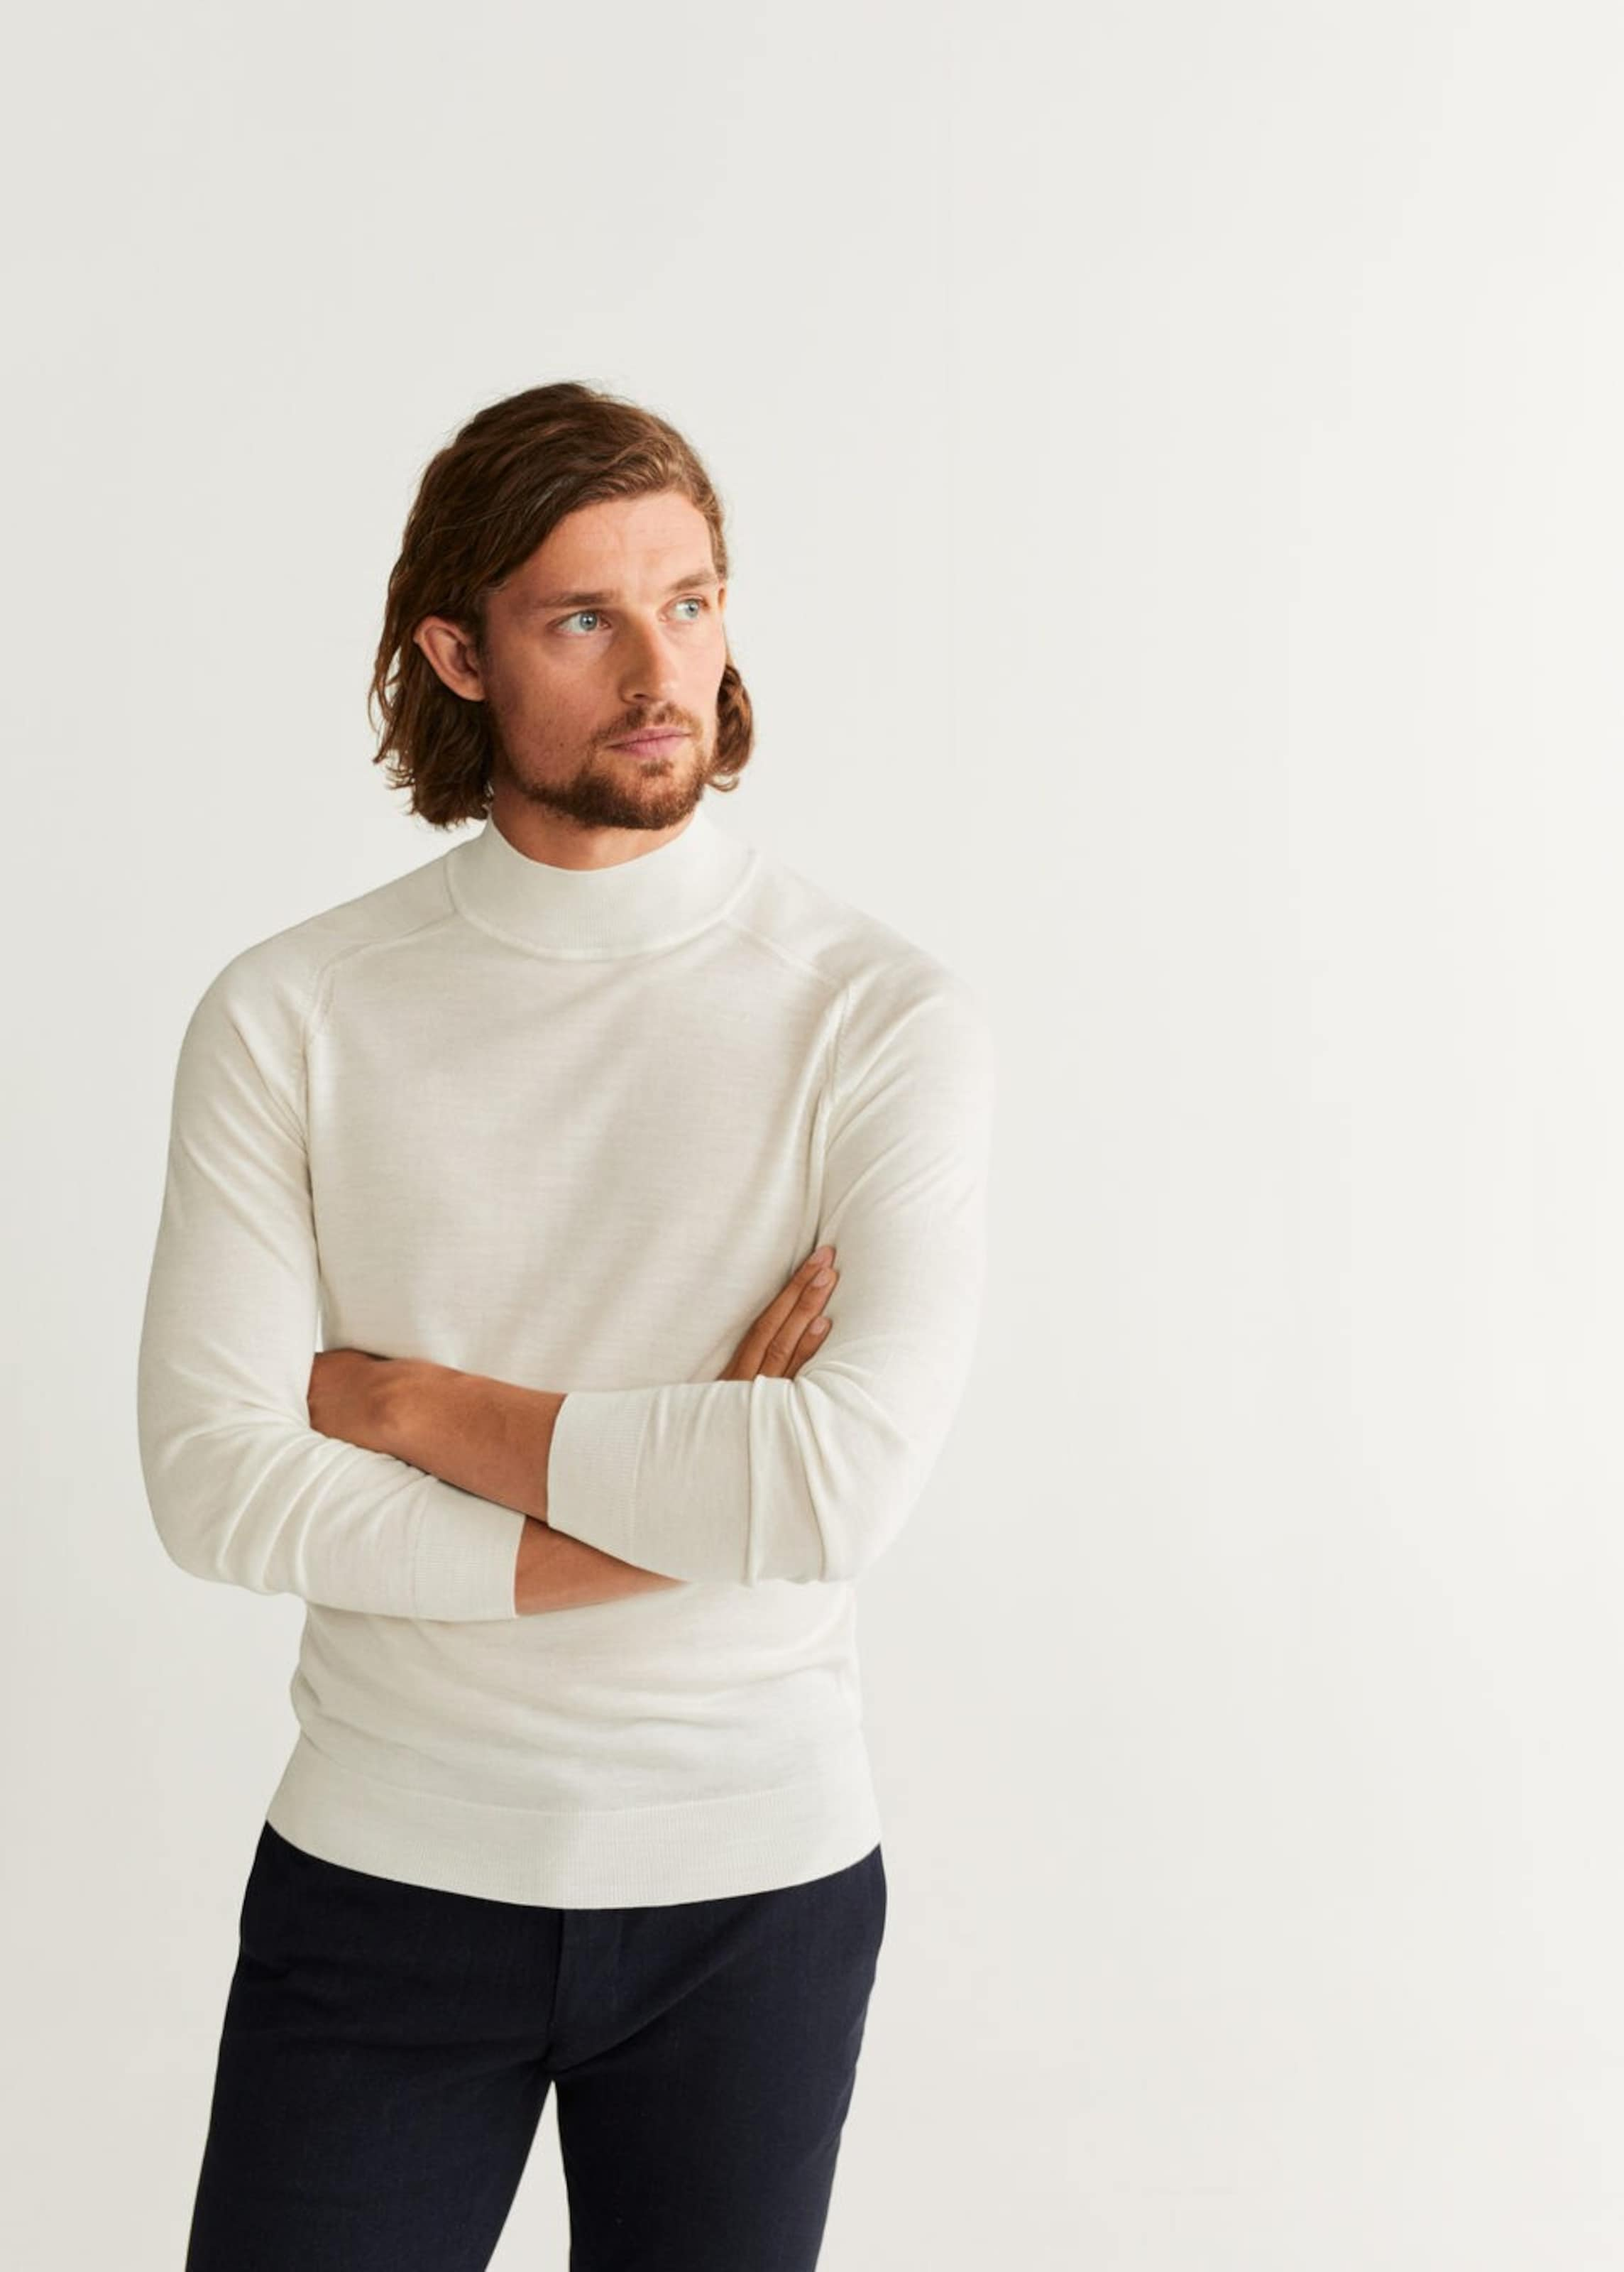 Man Pullover In 'willyp' Weißmeliert Mango eEHY9D2bWI